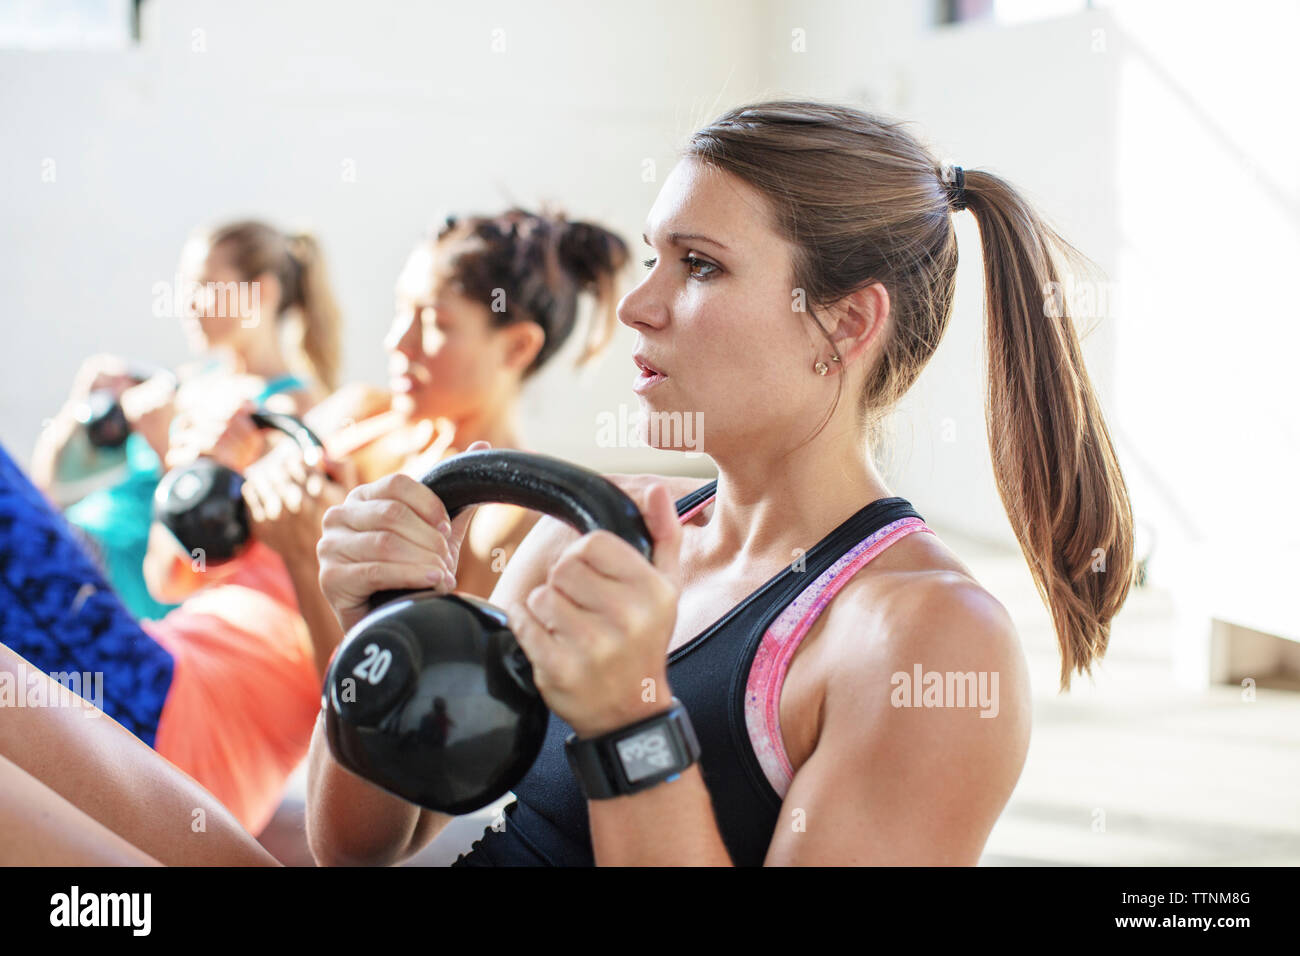 Female athletes lifting kettlebells in gym - Stock Image